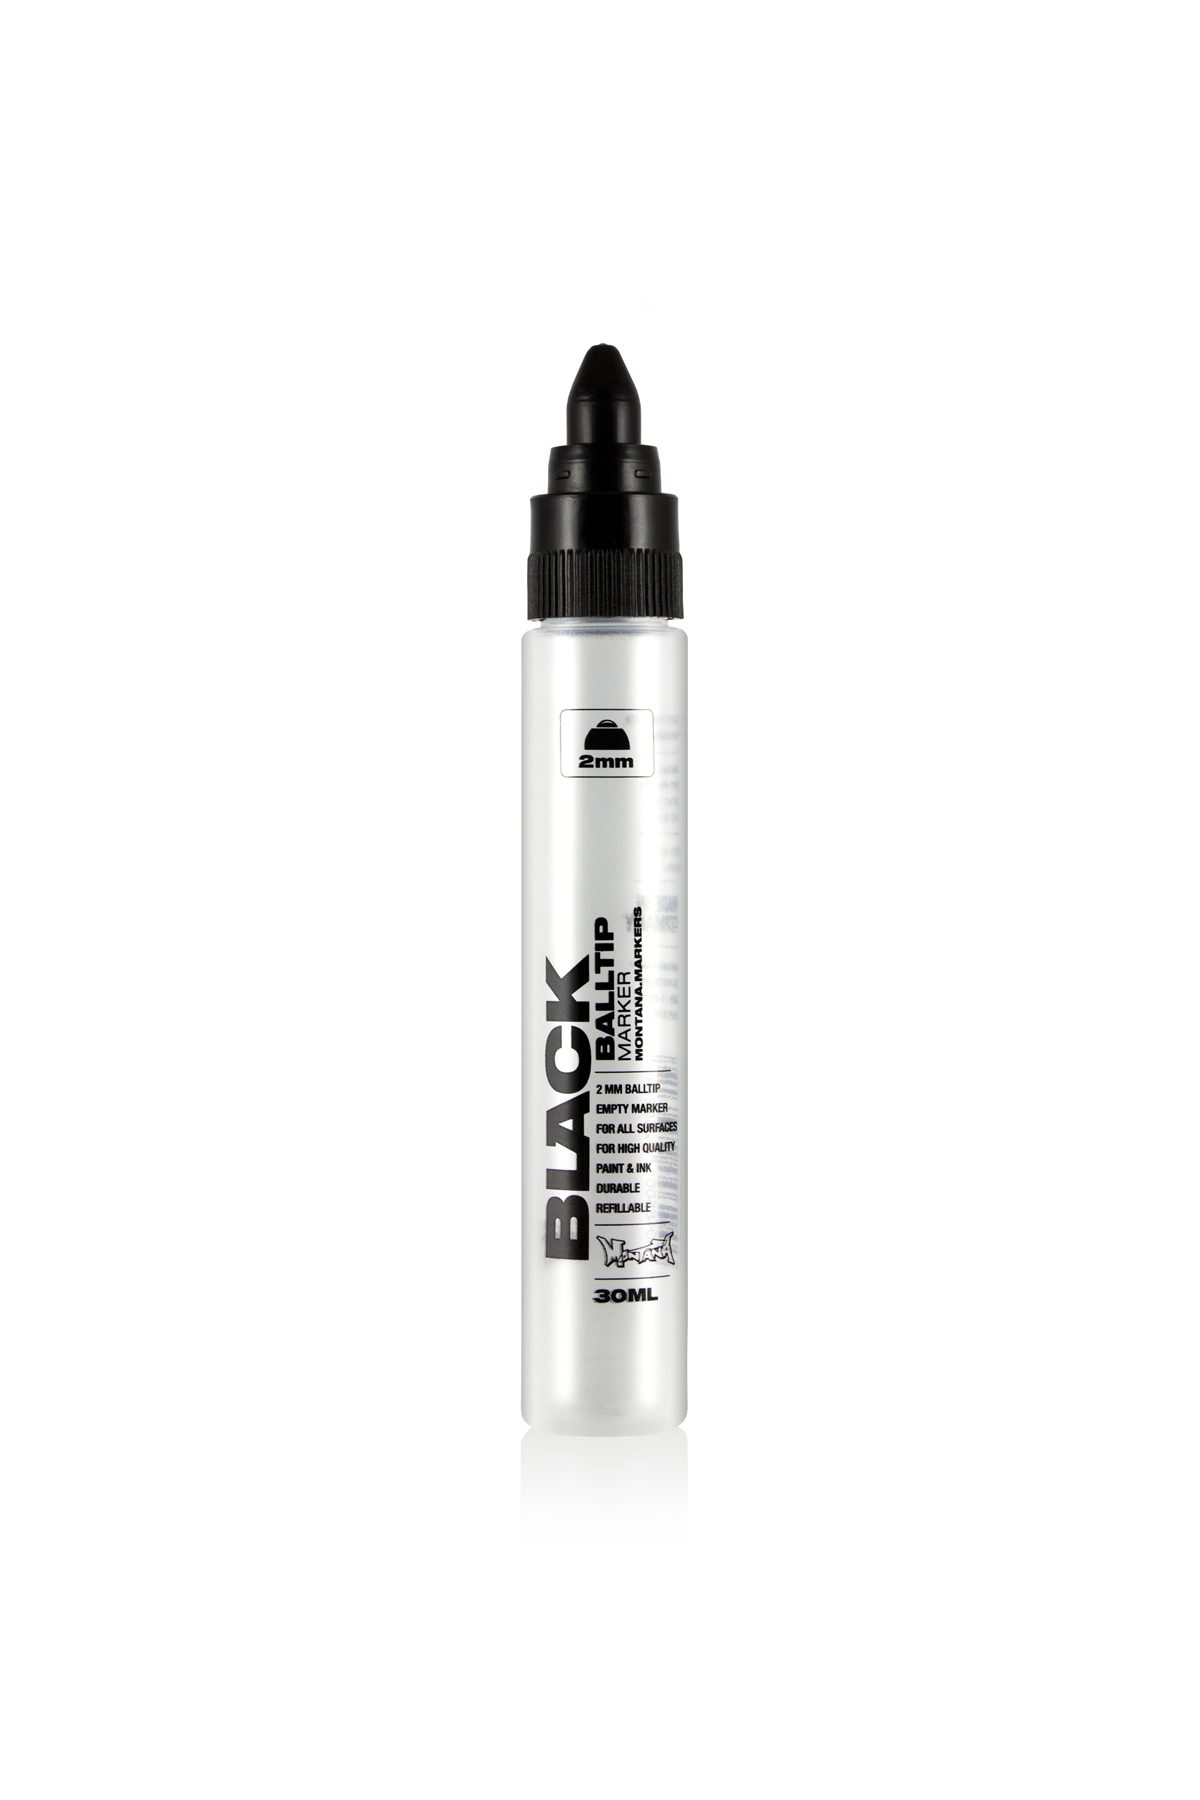 Montana BLACK EMPY BALLTIP Marker 2mm/30ml